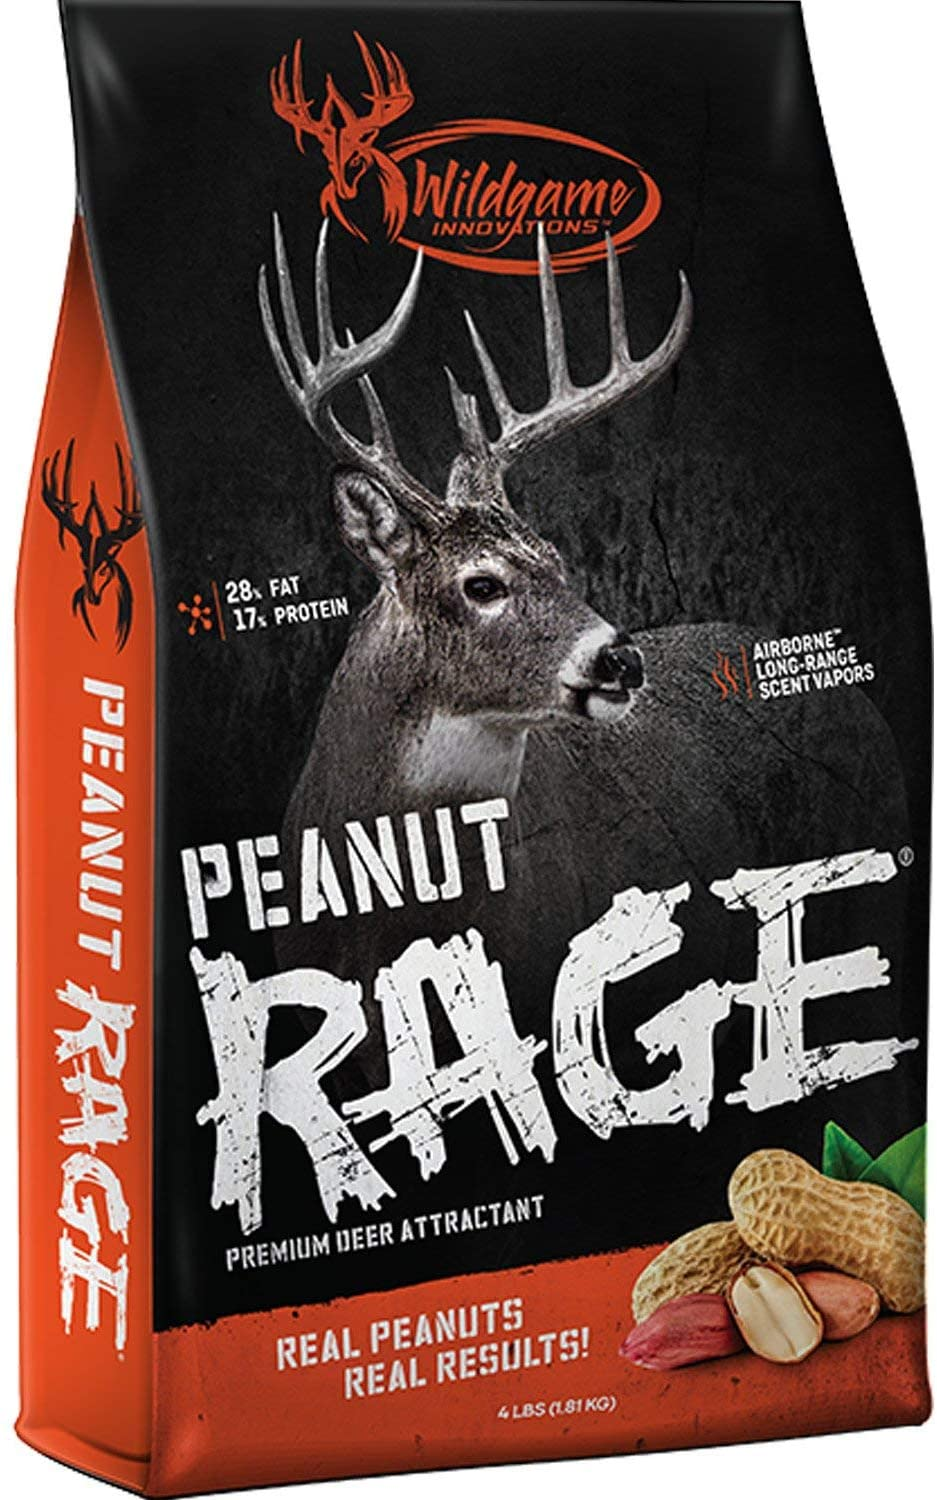 Wildgame Innovations Peanut Rage Deer Attractant 5lb, Premium Wildlife Attractant, Beige